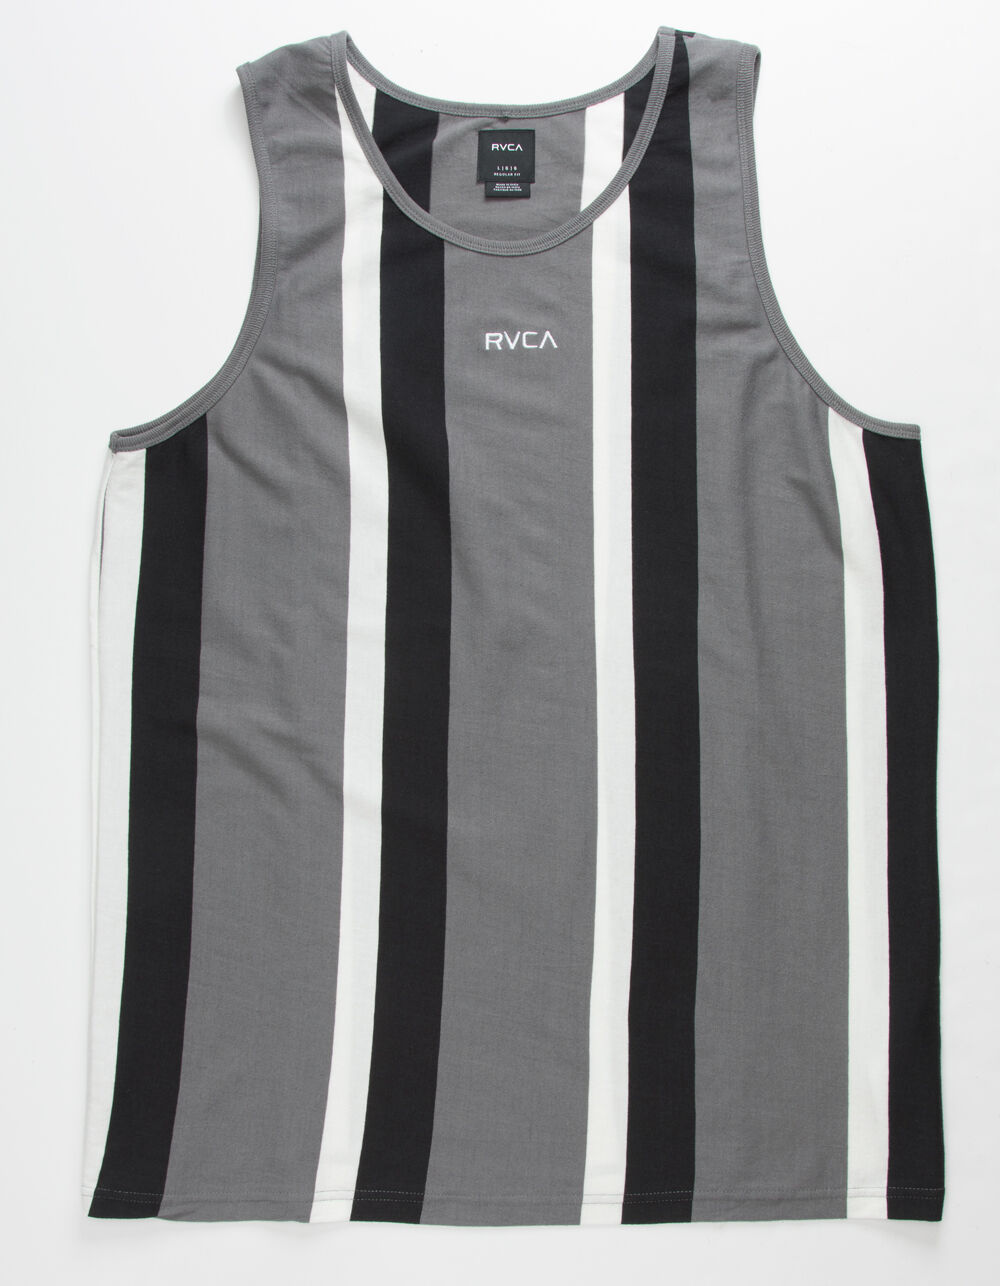 RVCA Surrender Stripe Gray & Black Tank Top